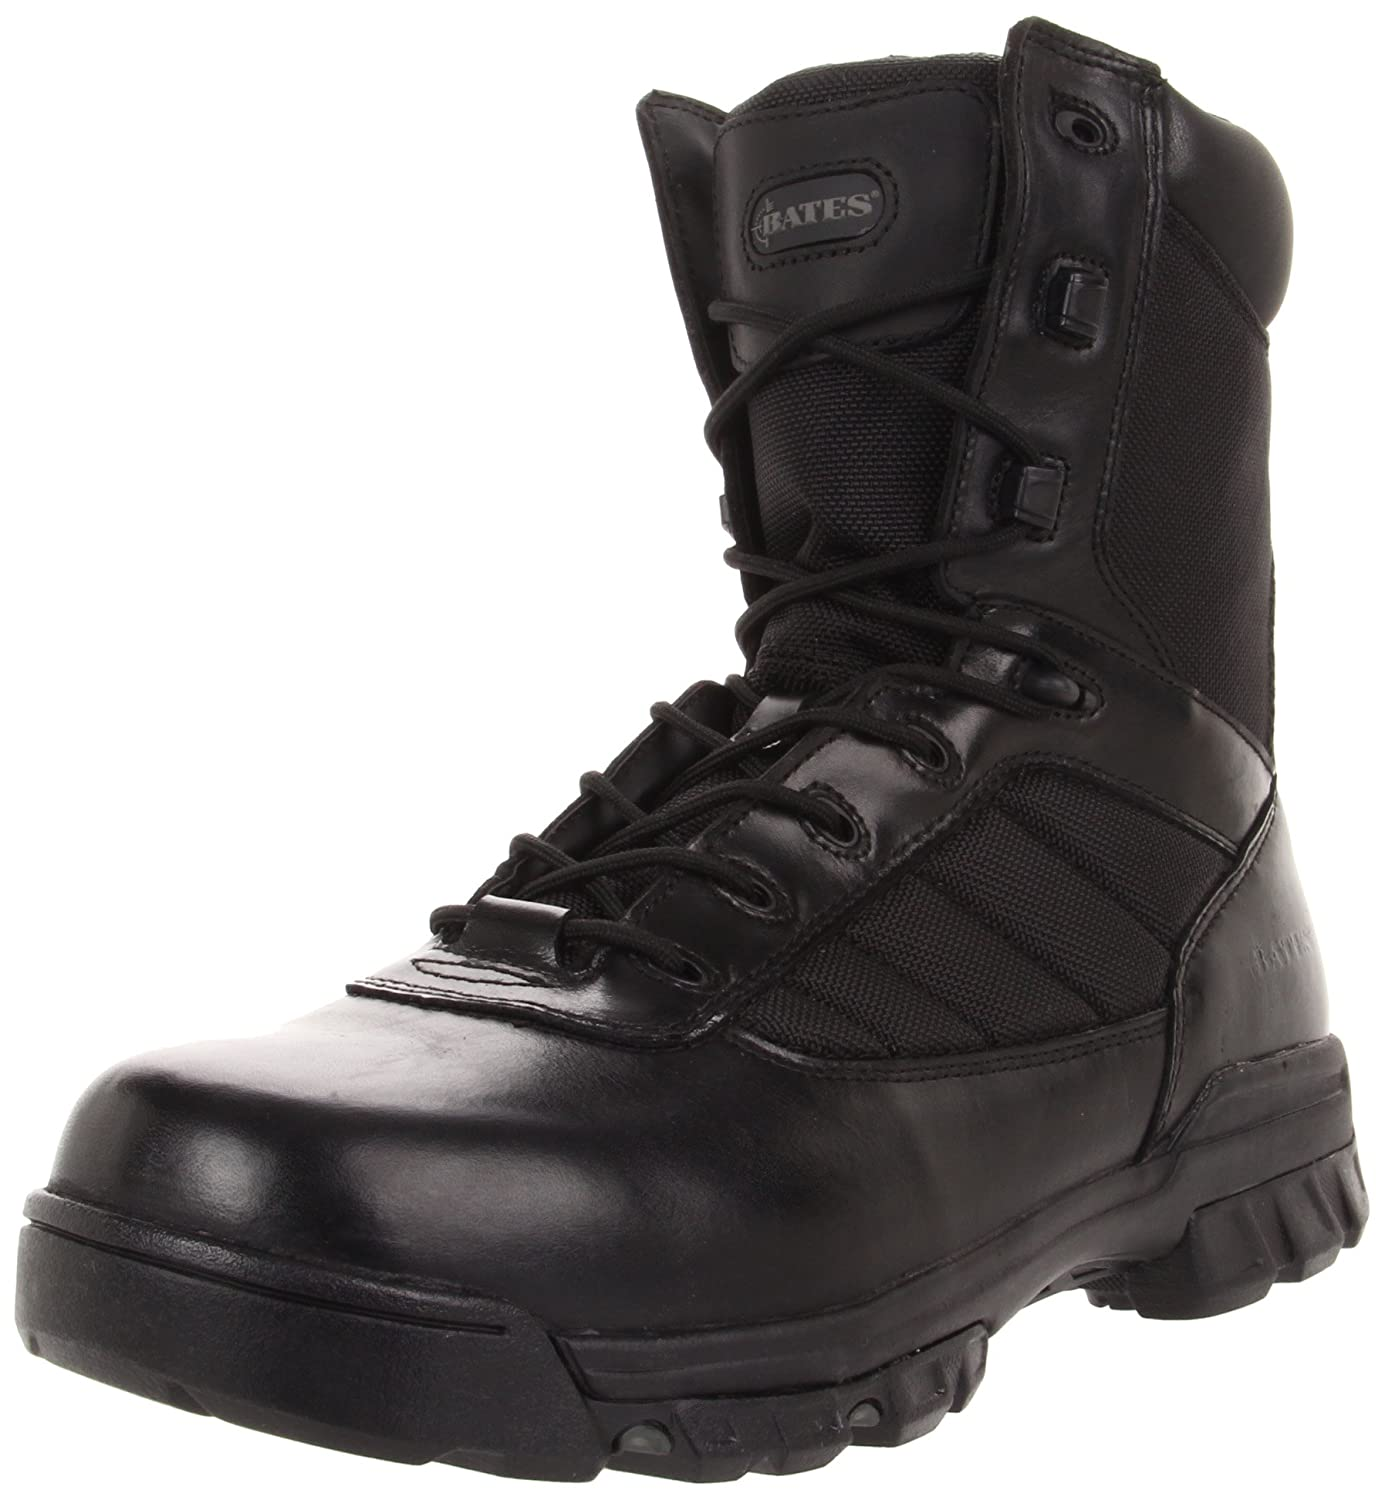 online store cc445 d23eb Bates Men's Ultra-Lites 8 Inches Tactical Sport Side-Zip Boot